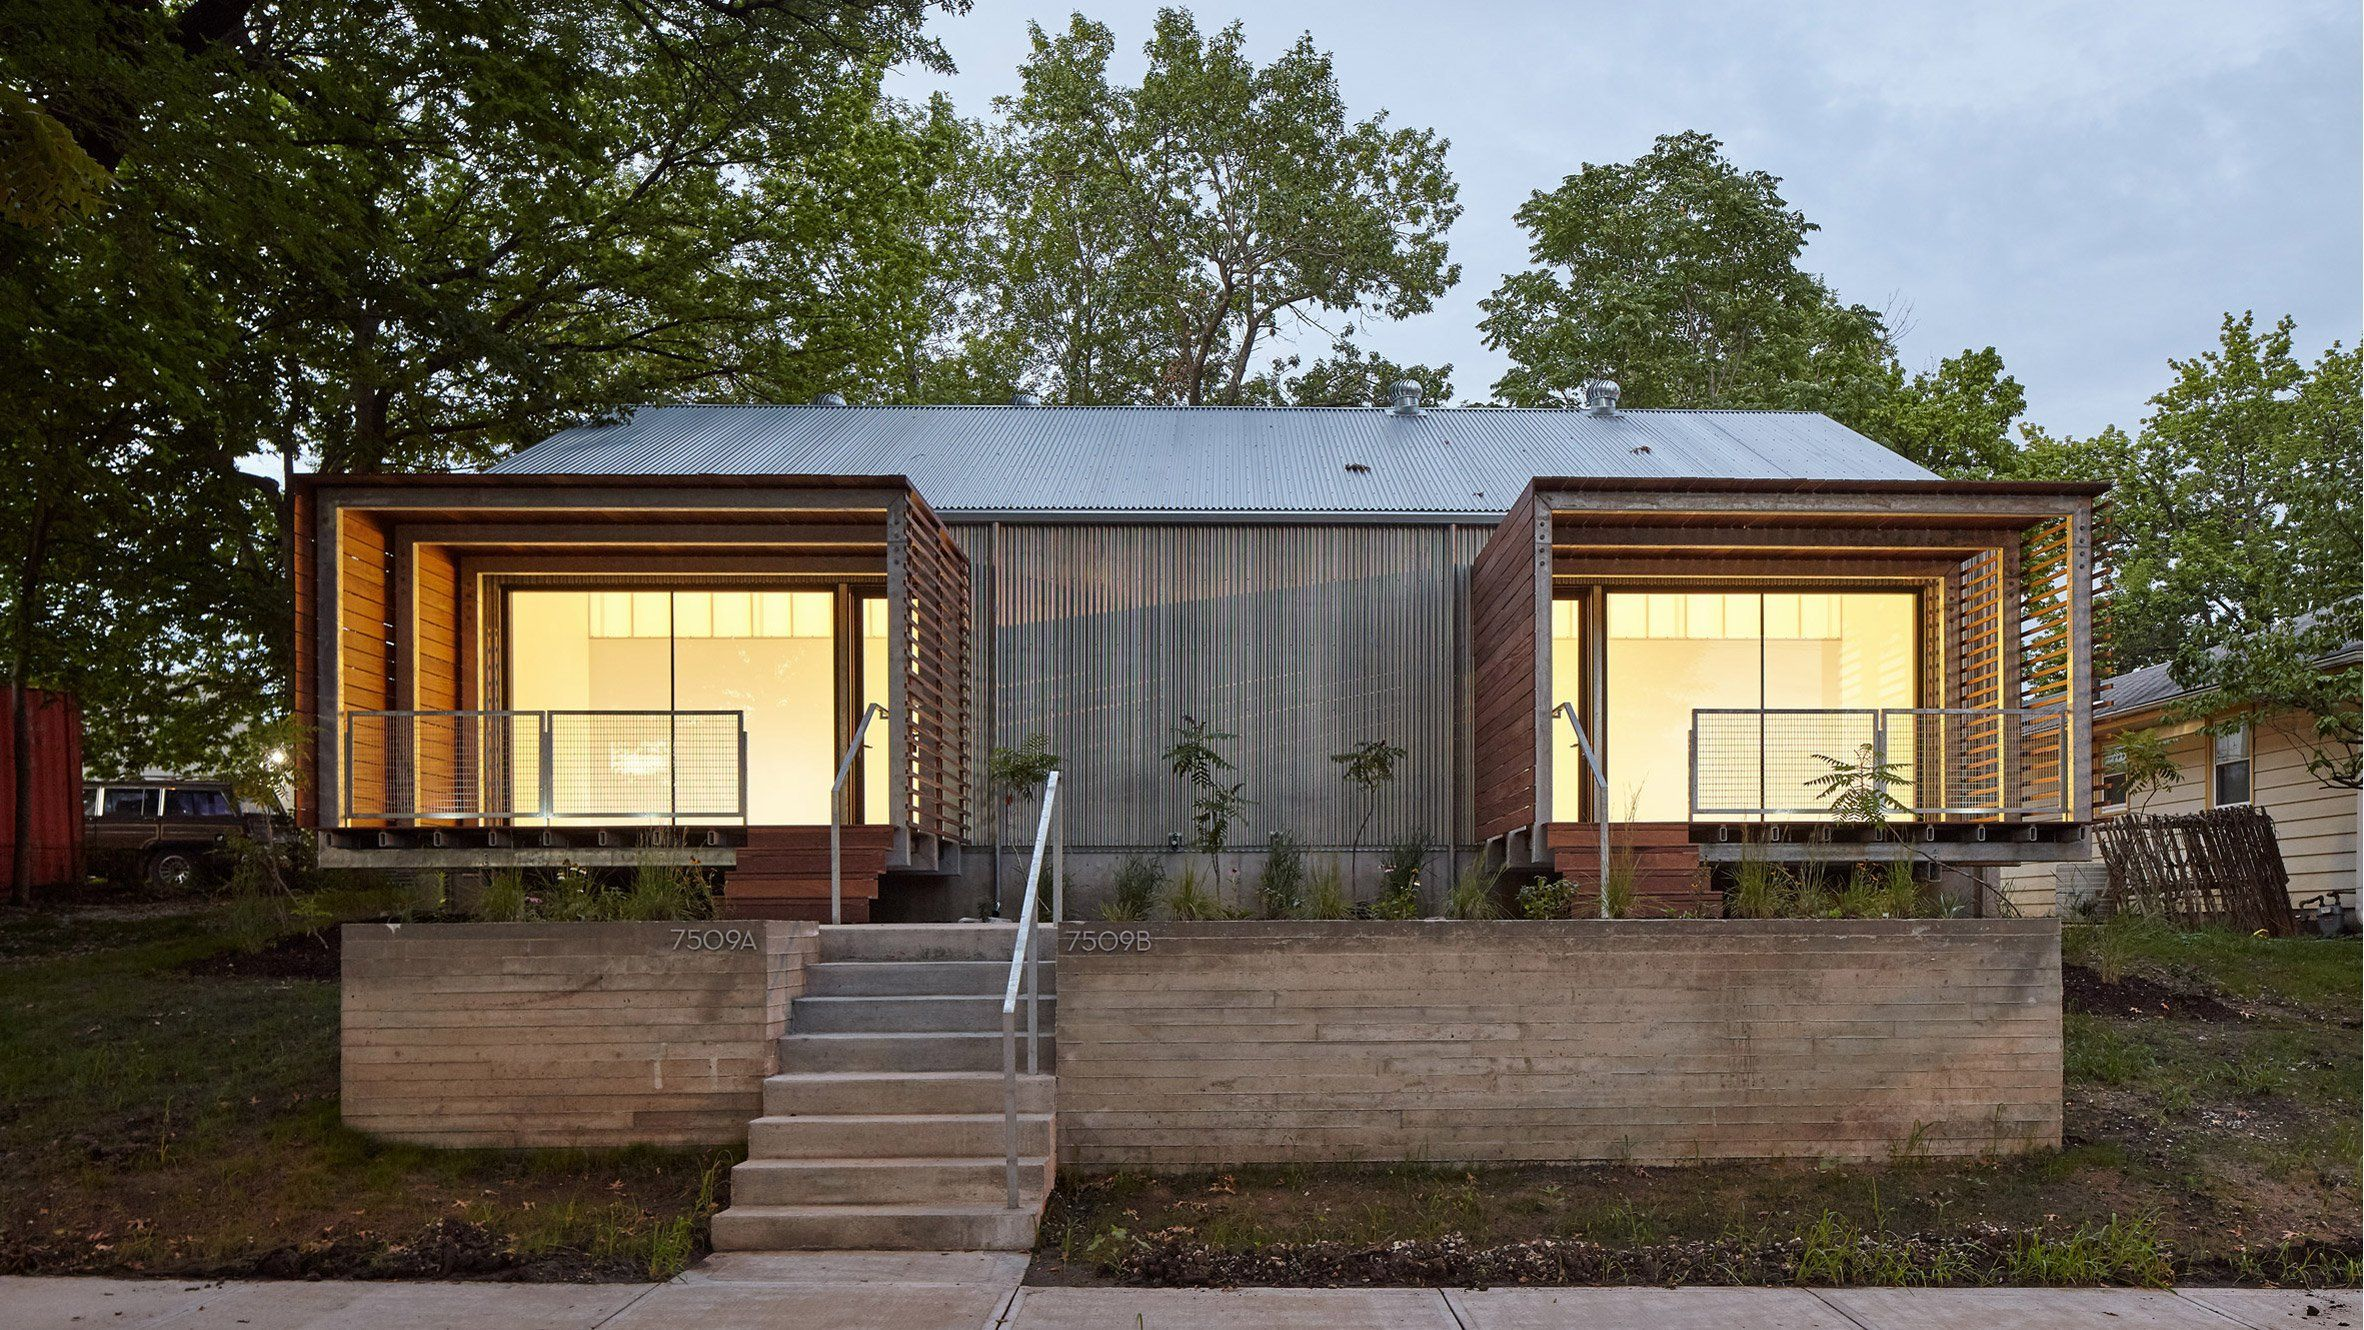 Kansas City students wrap affordable home in